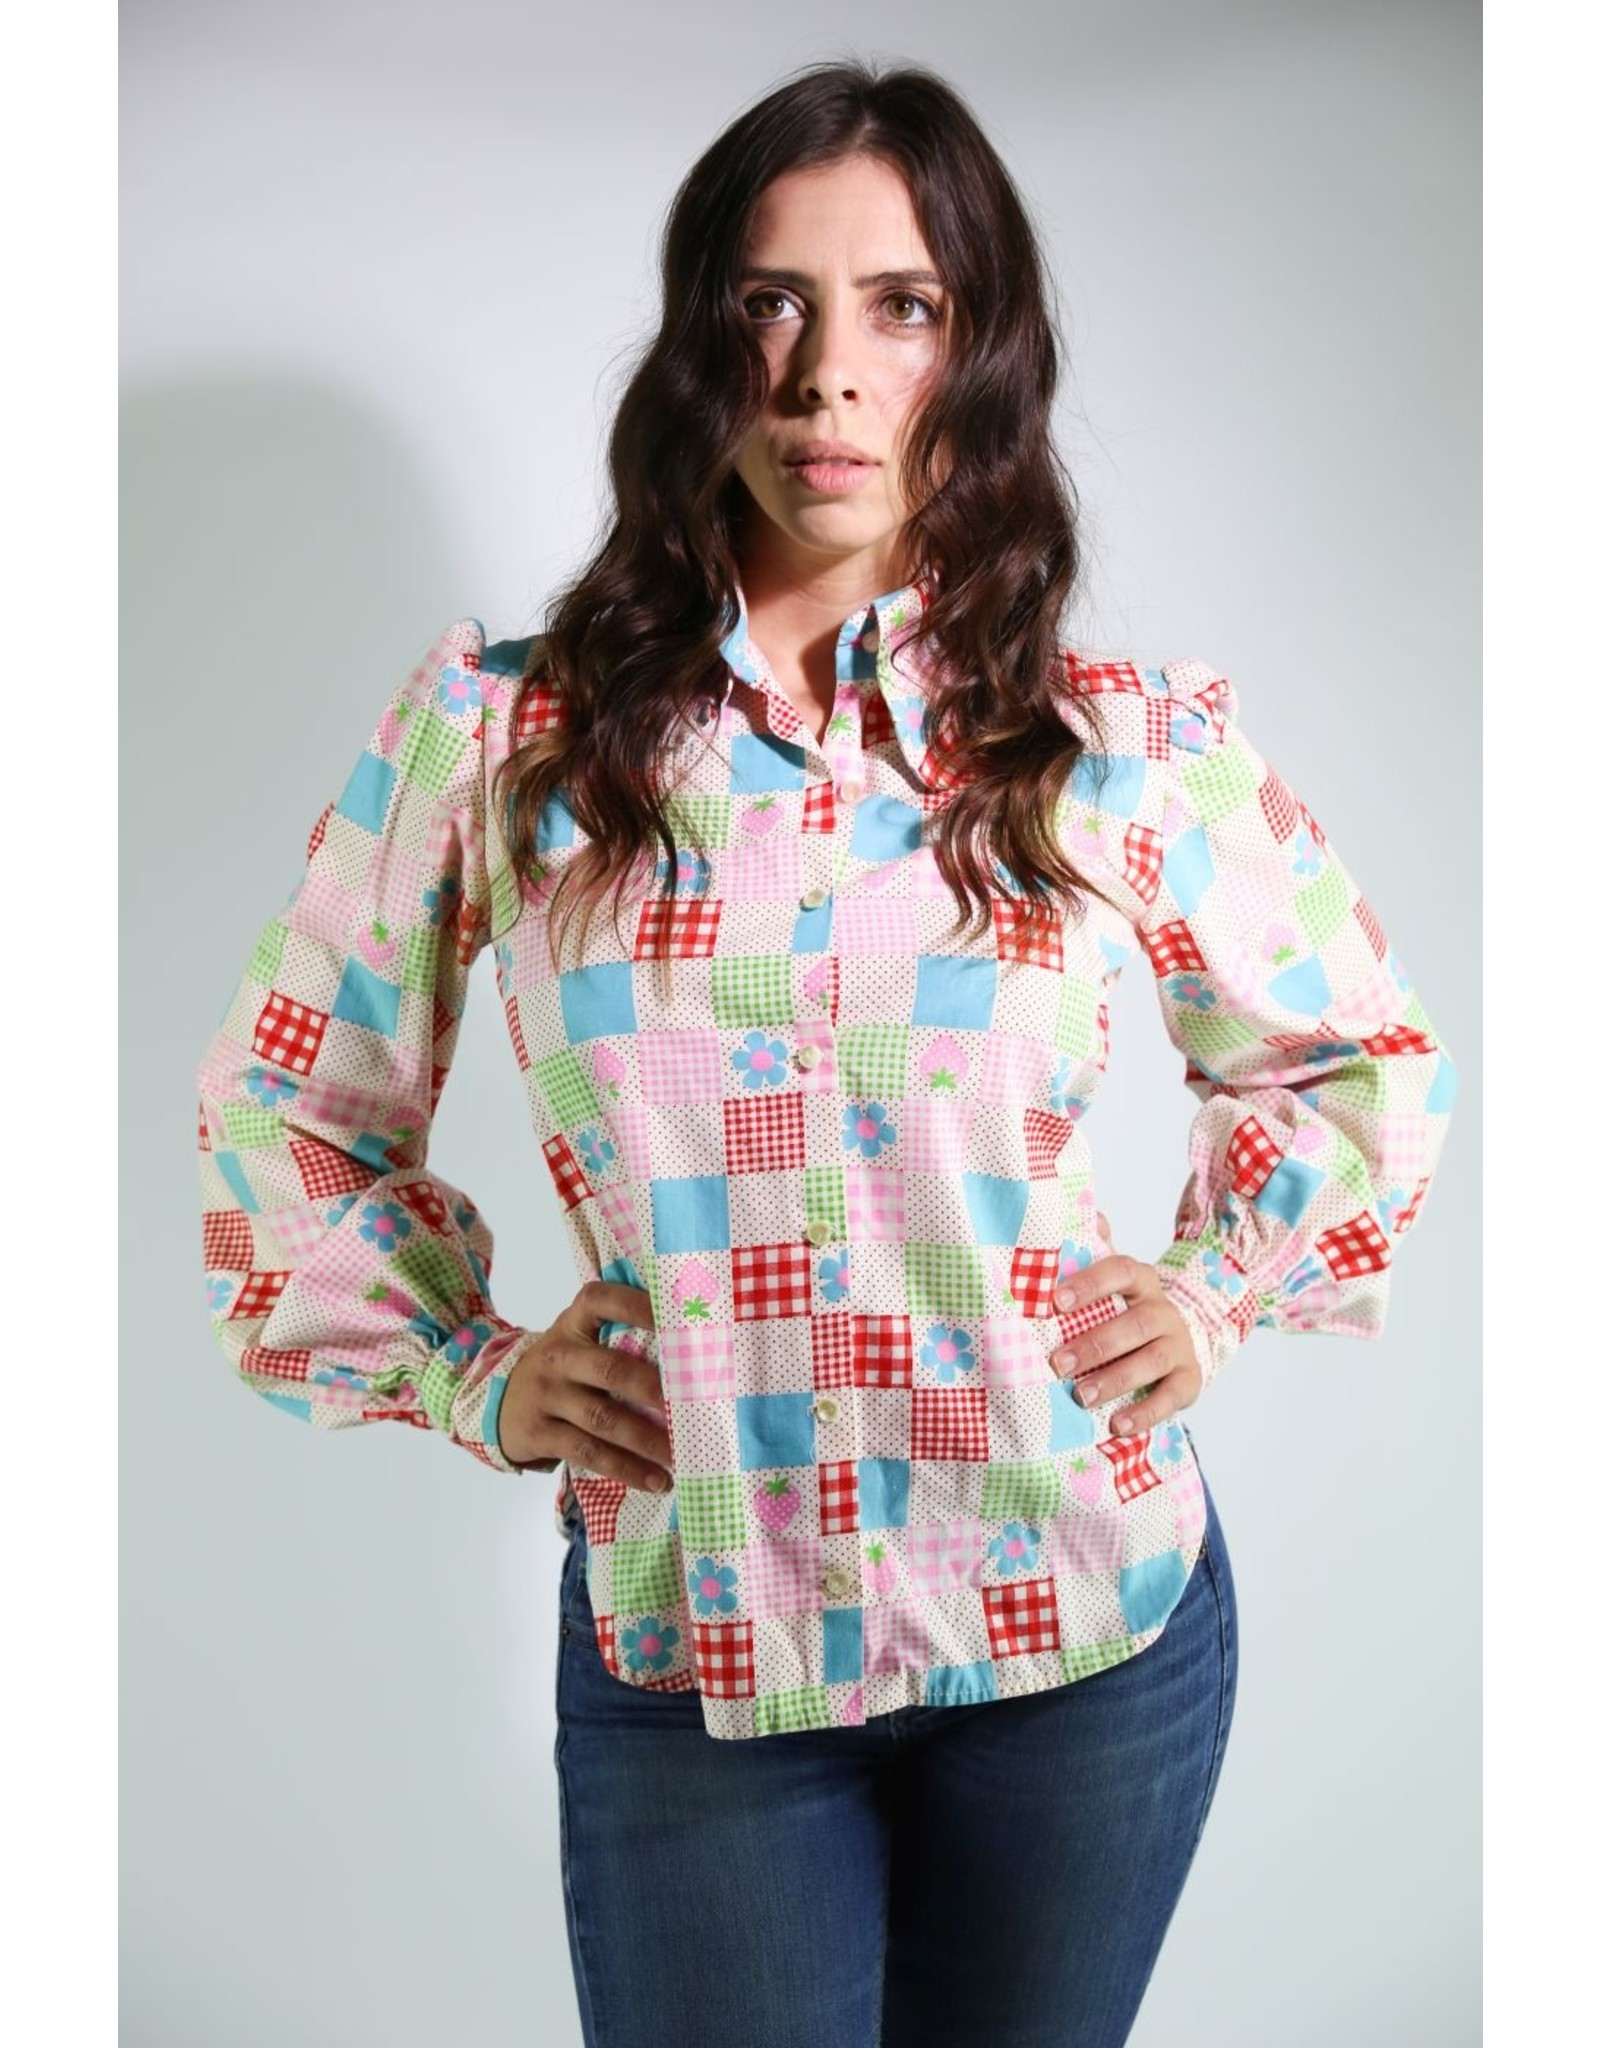 1970's Patchwork Strawberry Top